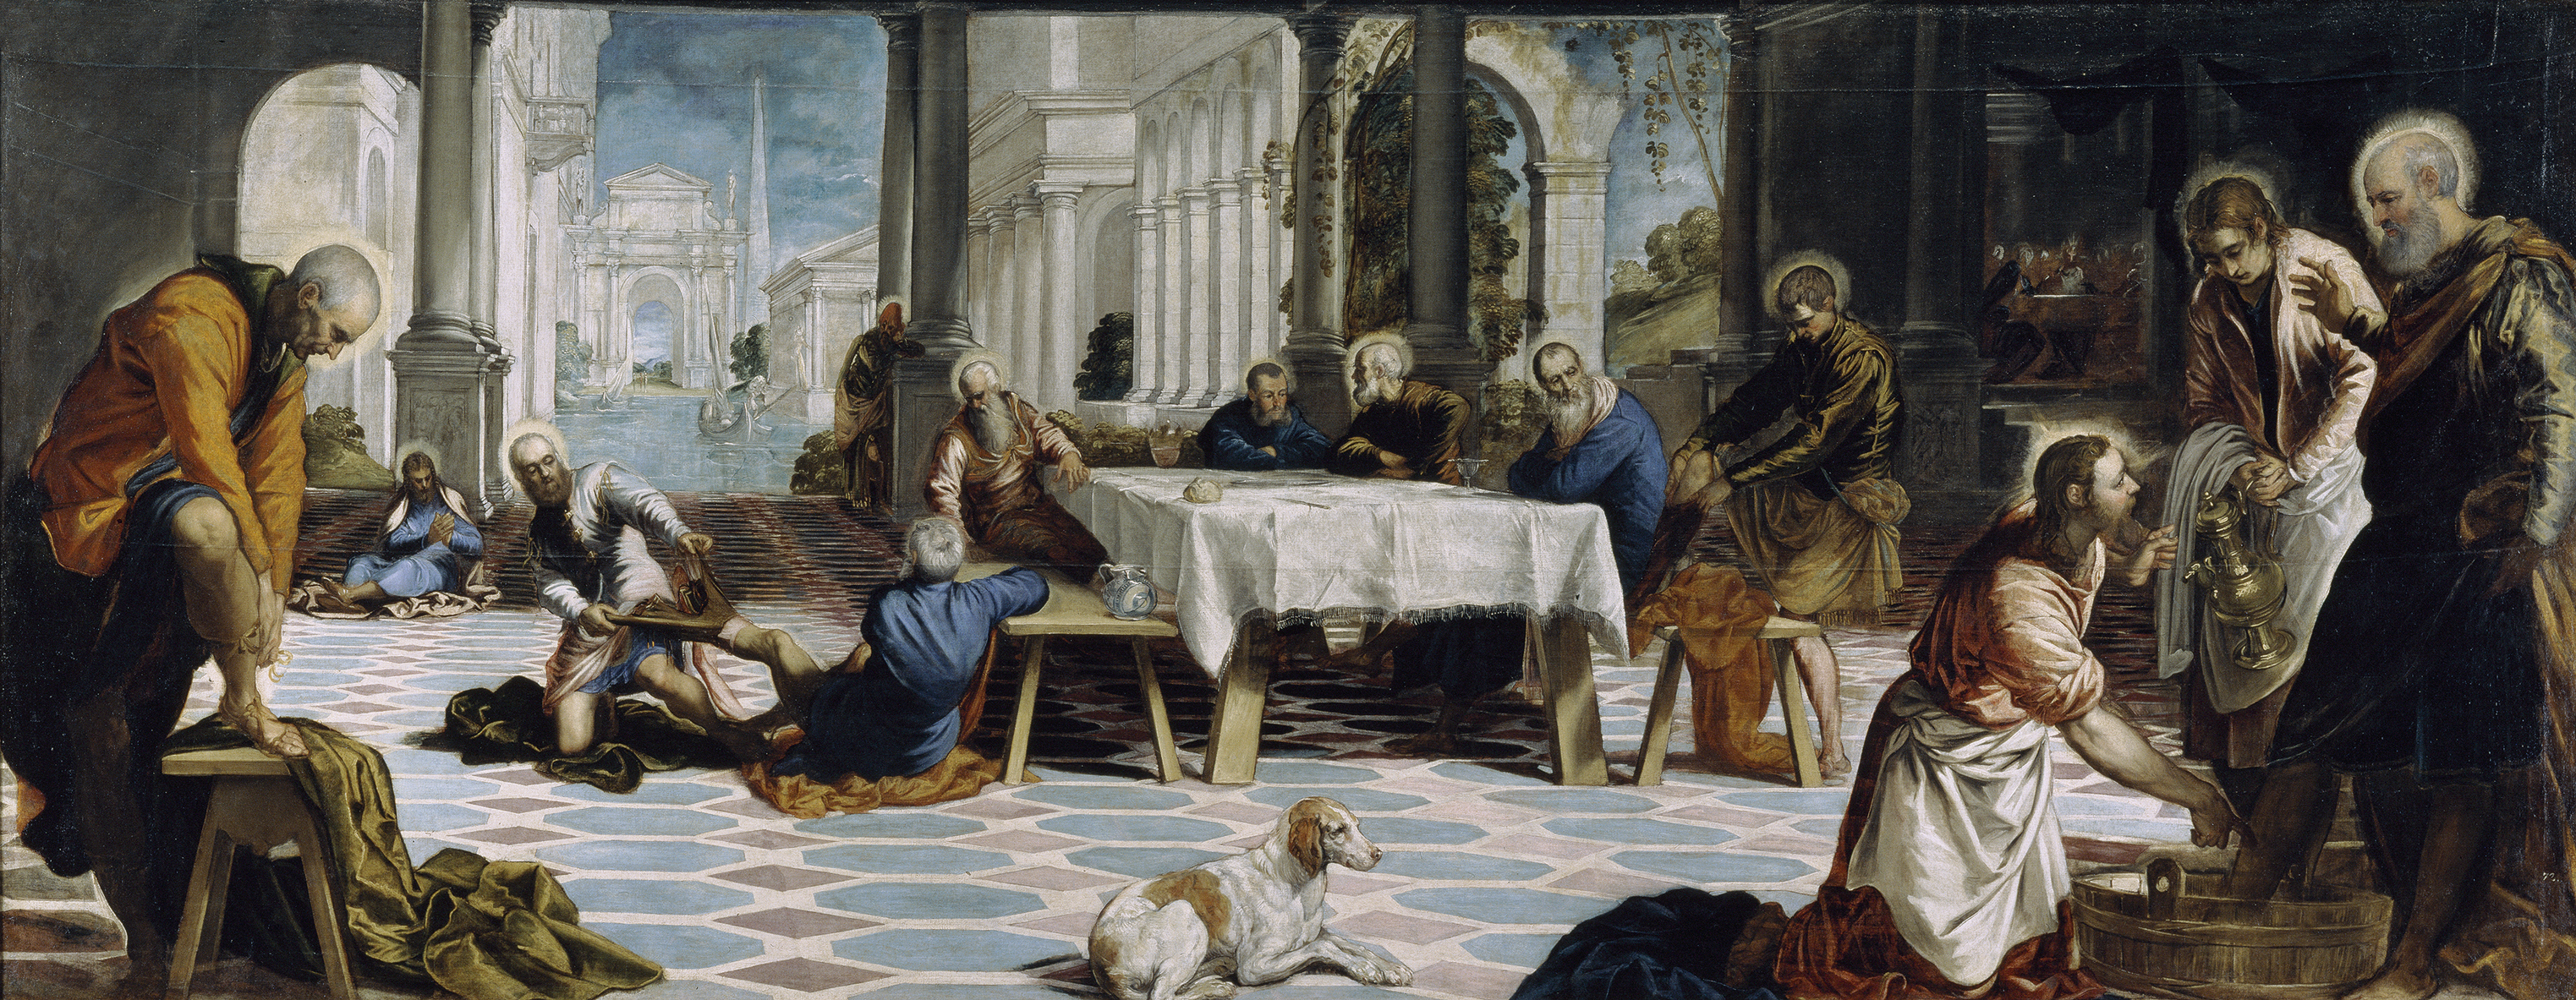 https://upload.wikimedia.org/wikipedia/commons/a/a2/El_Lavatorio_%28Tintoretto%29.jpg